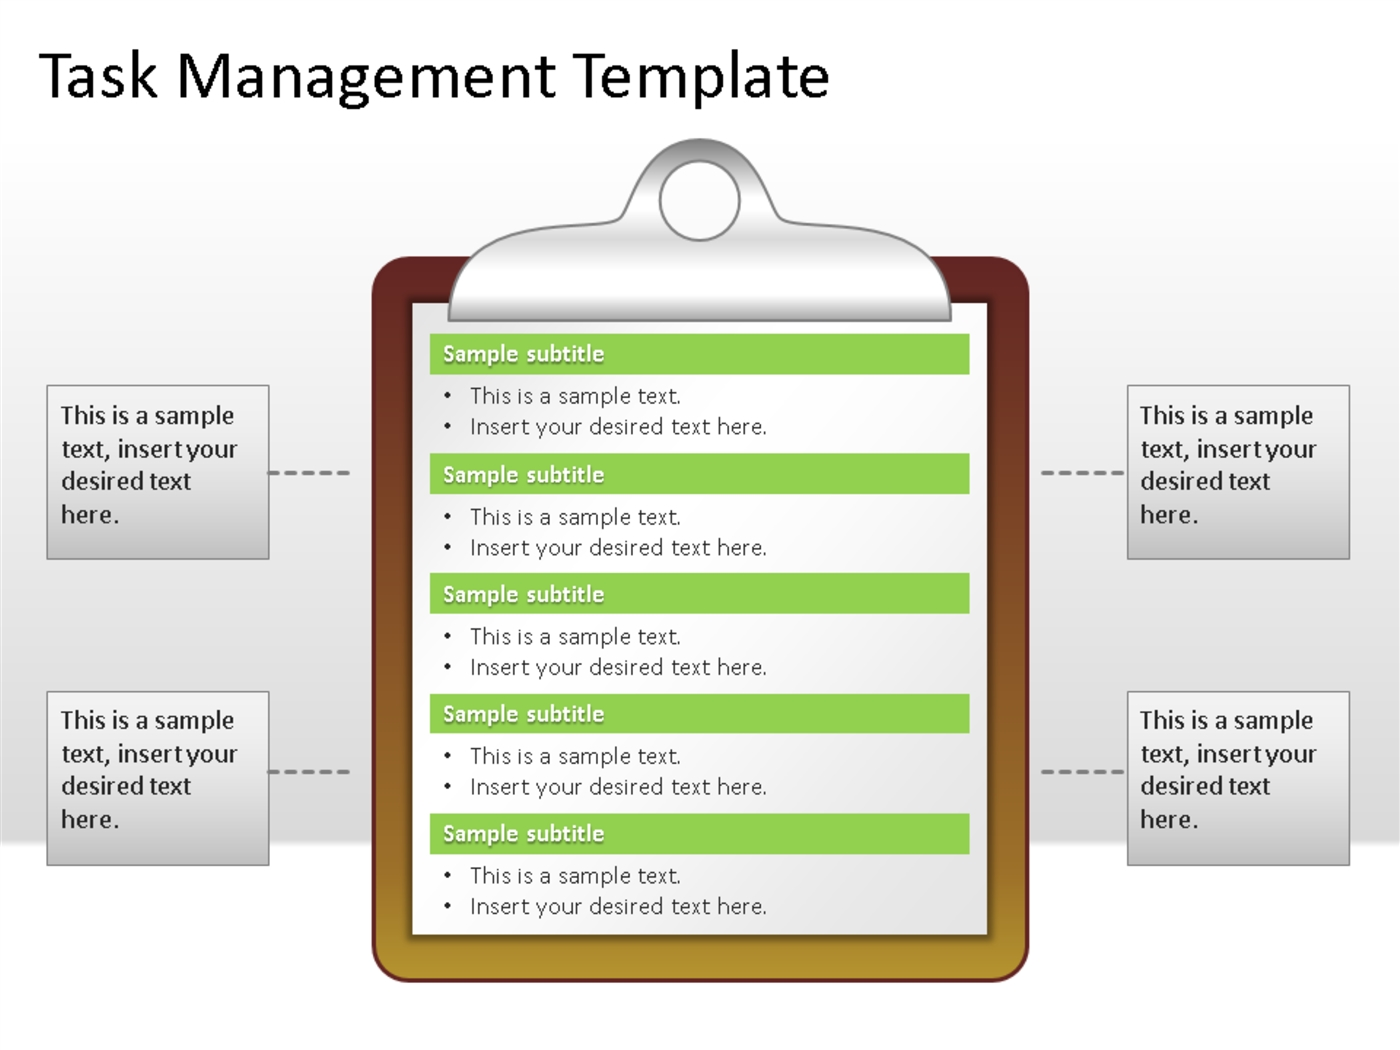 1076 task management powerpoint templatepptx powerpoint 1076 task management powerpoint templatepptx powerpoint presentation ppt toneelgroepblik Image collections